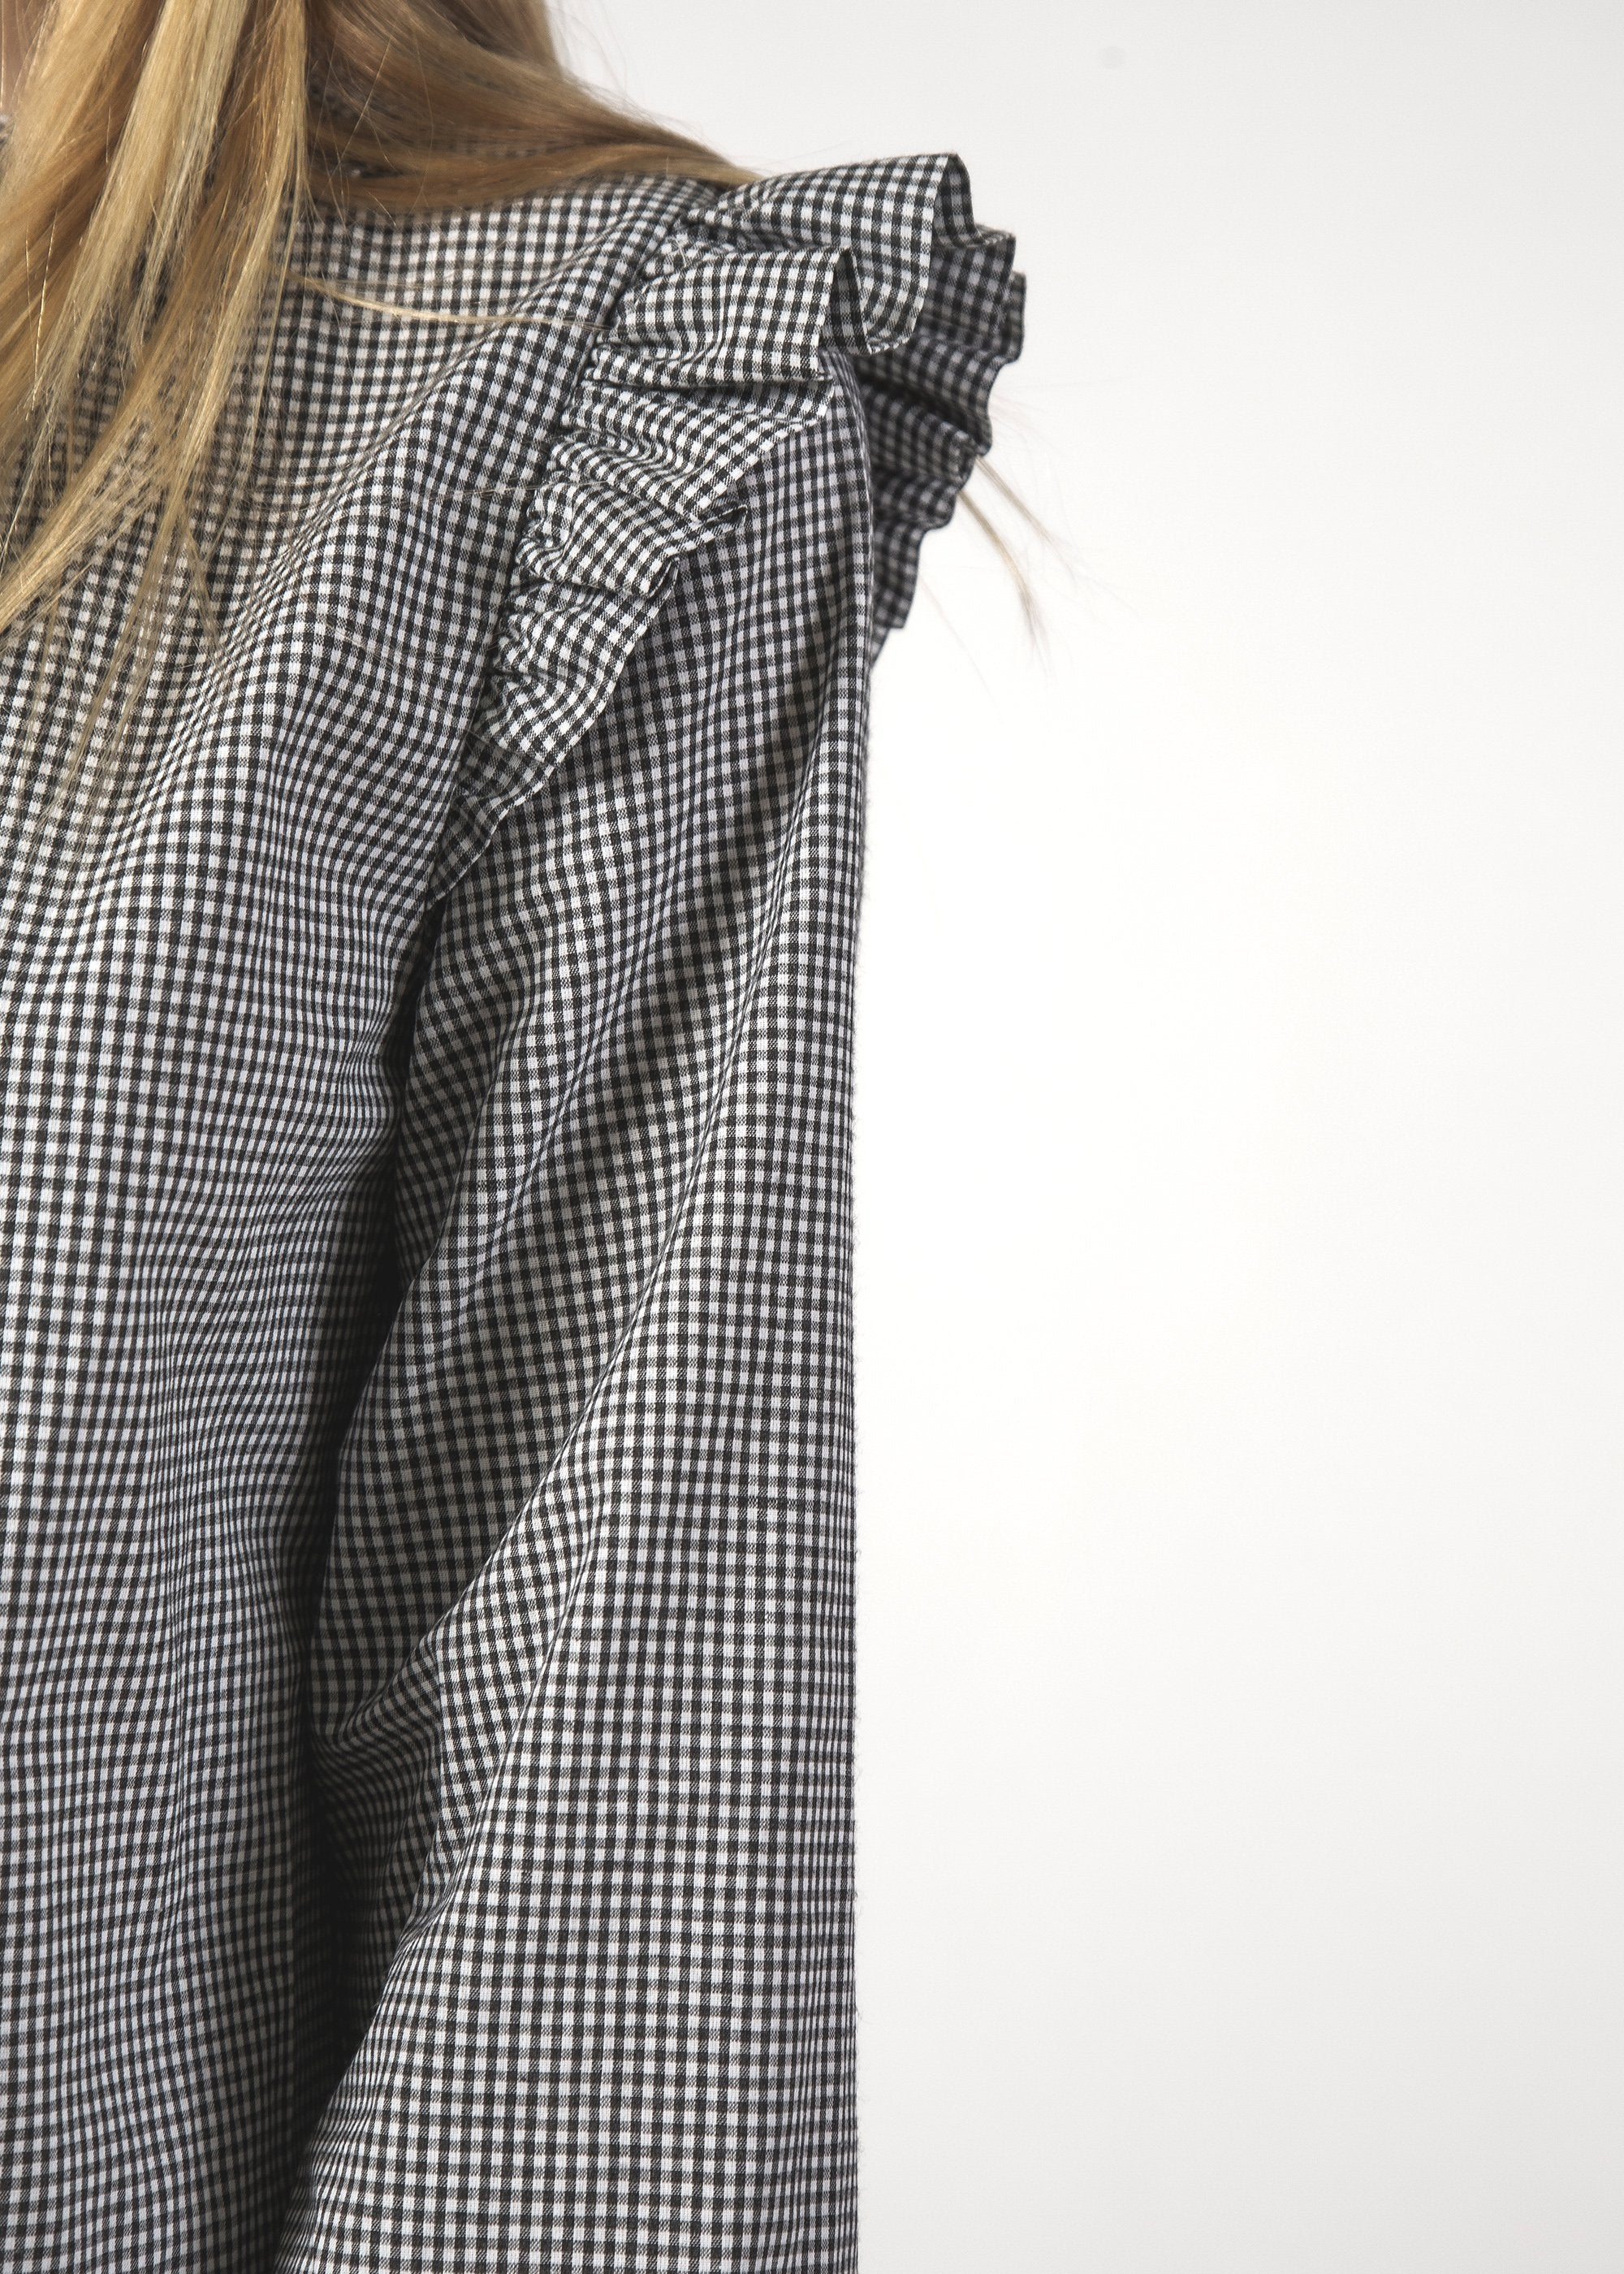 SALE - OOH LA LA DRESS - B & W Mini Check